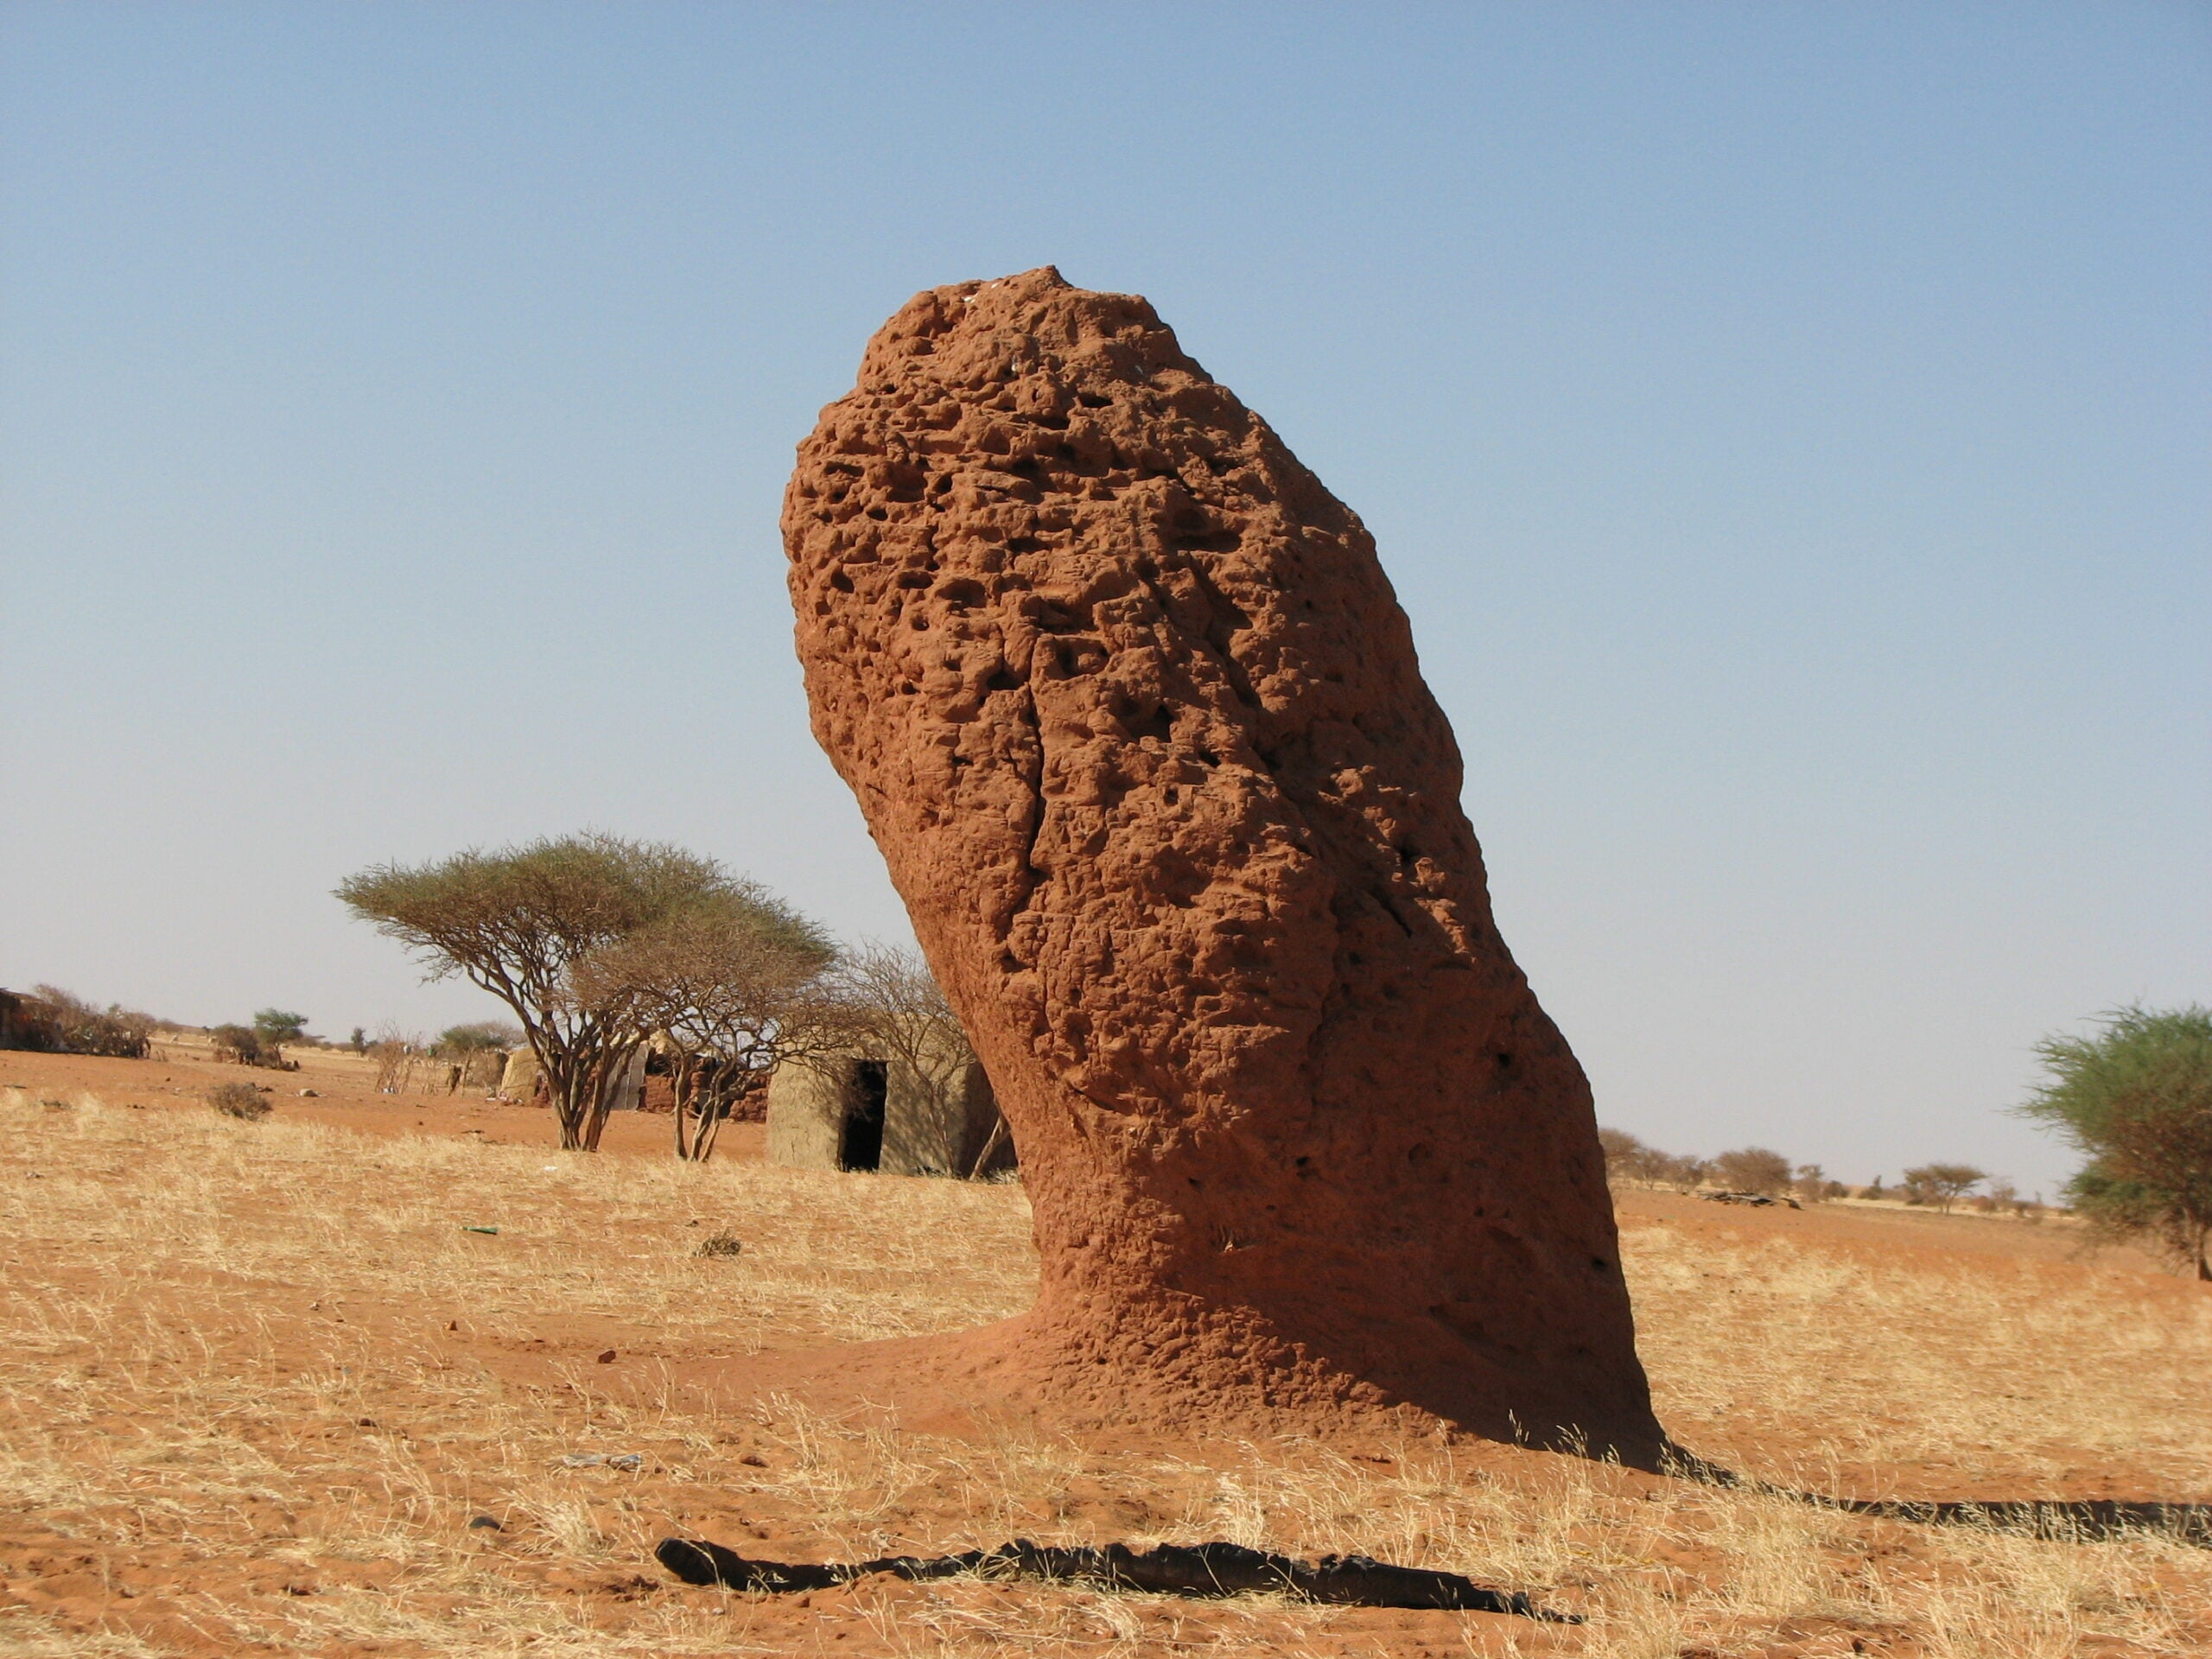 Termites Engineer Solar-Powered Ventilation Into Their Mounds